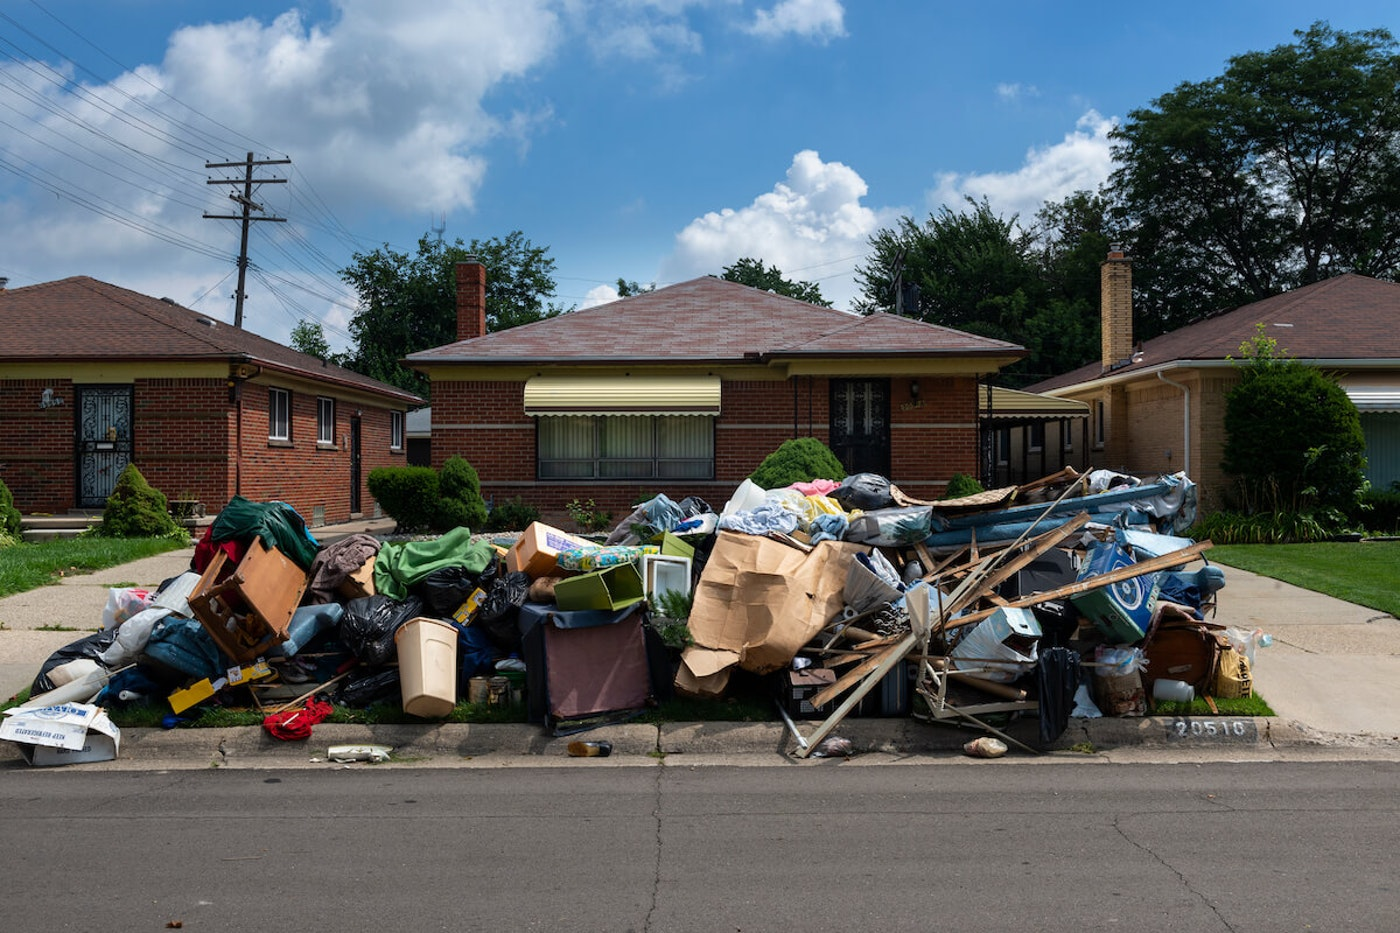 An evicted house at a suburban street with left belongings on the lawns near 8 mile road in the city of Detroit.